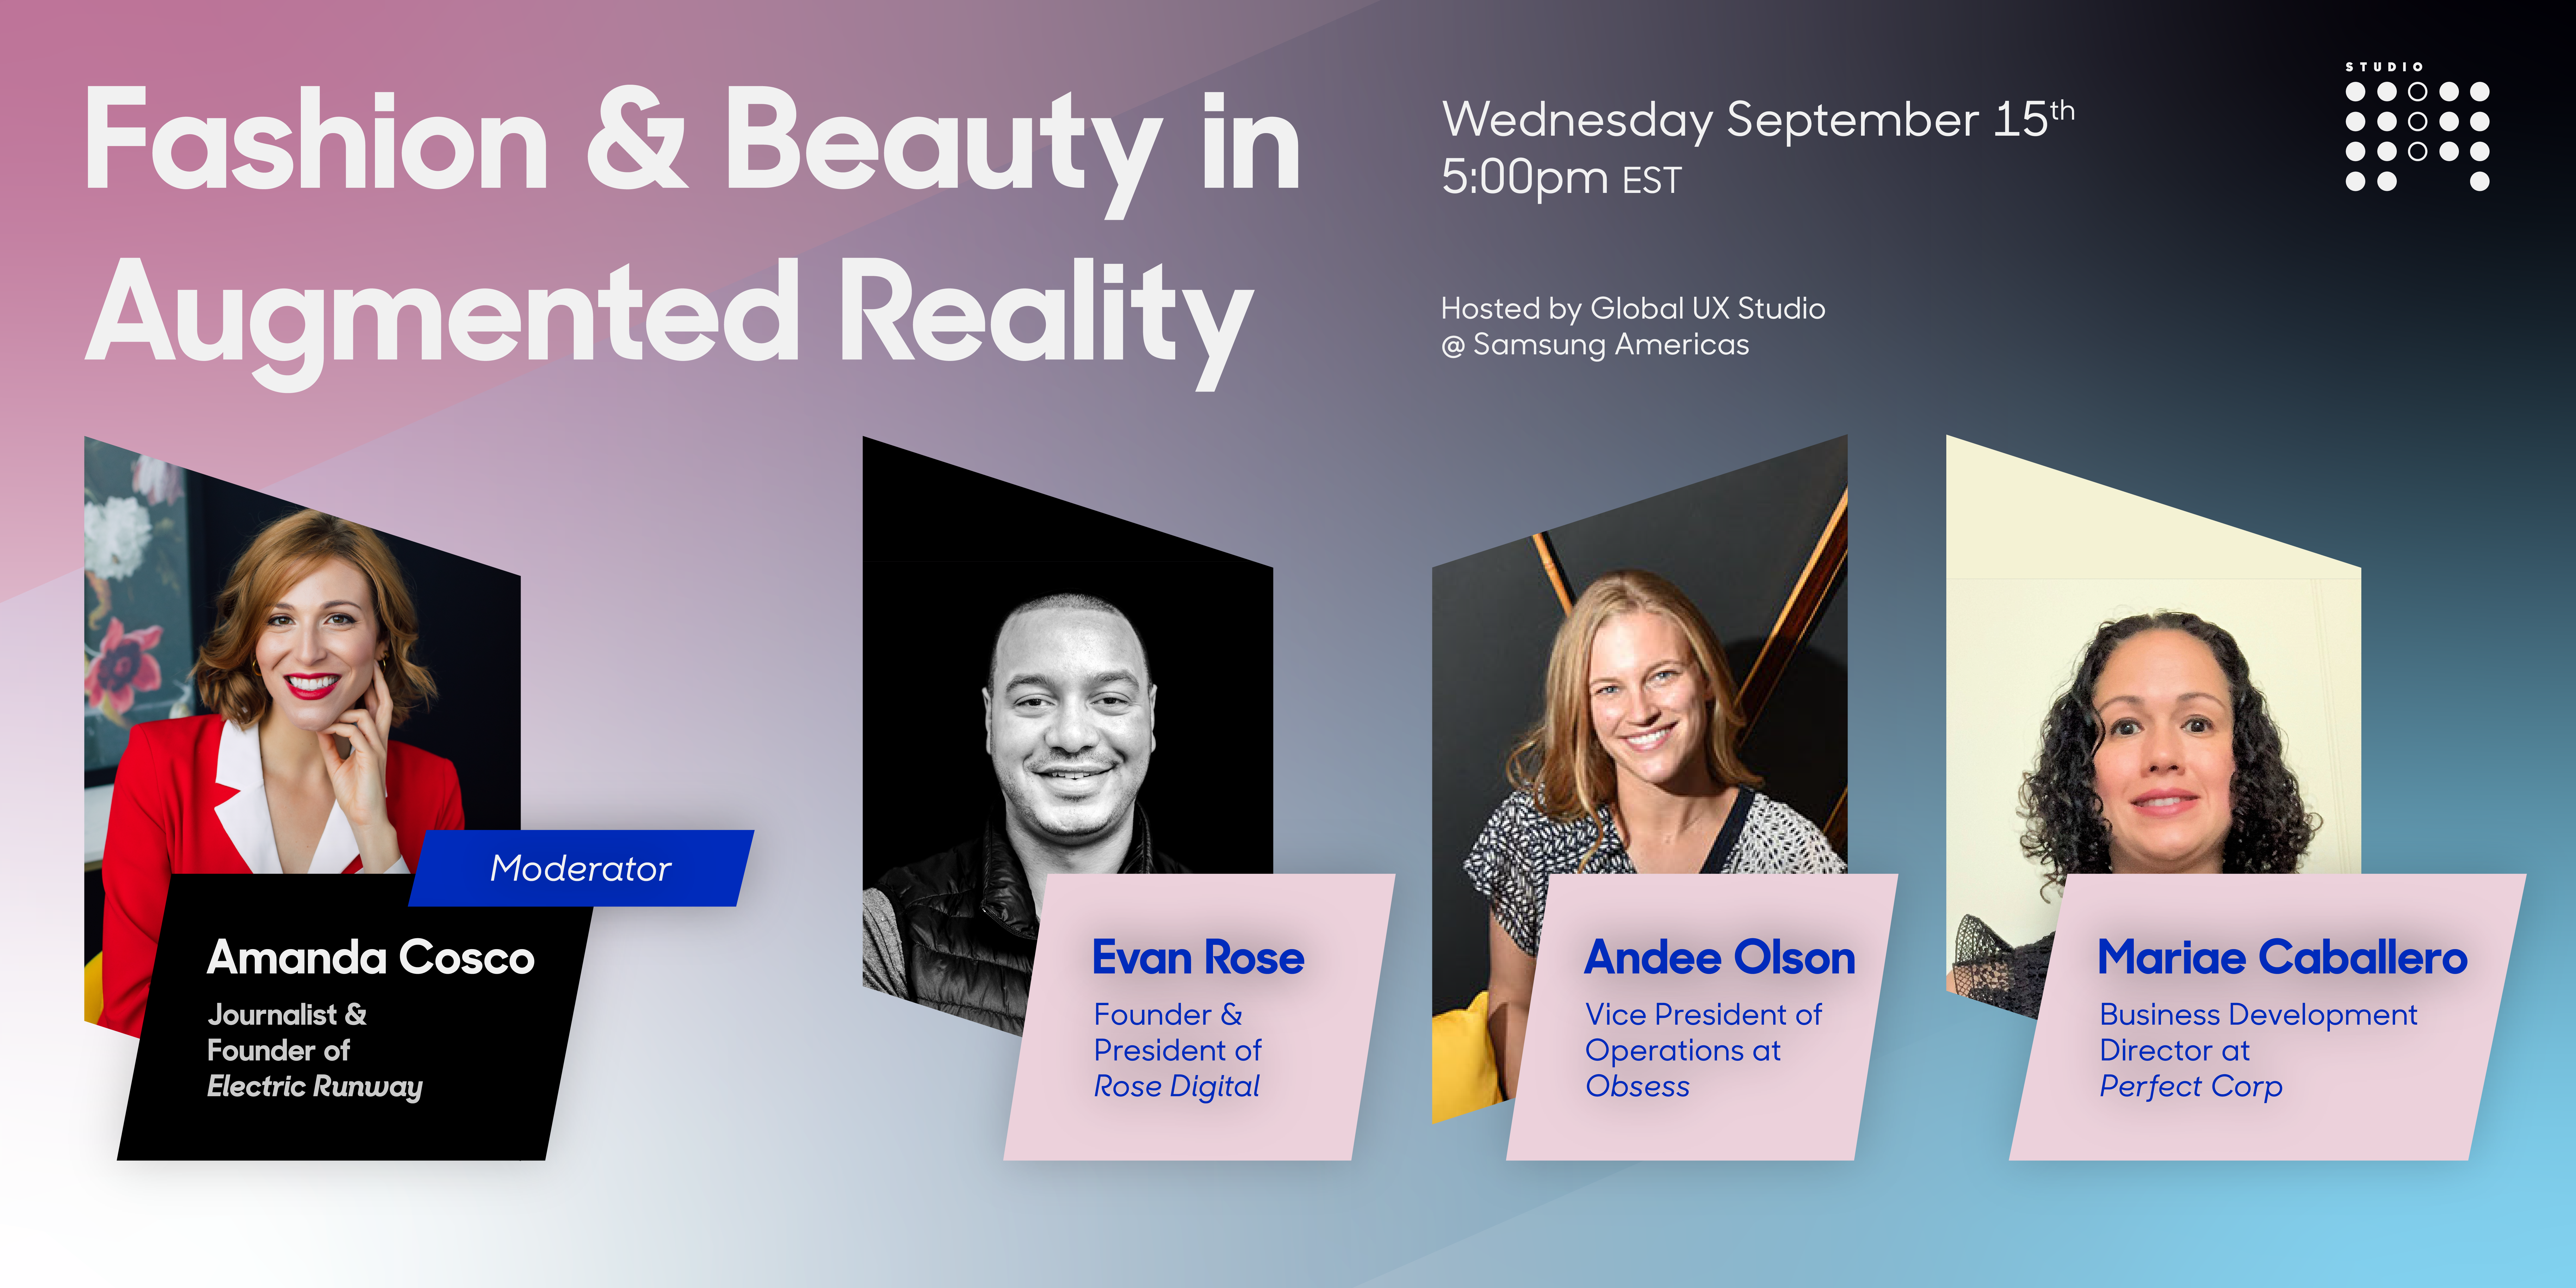 Don't Miss this Conversation on Augmented Reality in Fashion and Beauty in Partnership with Samsung